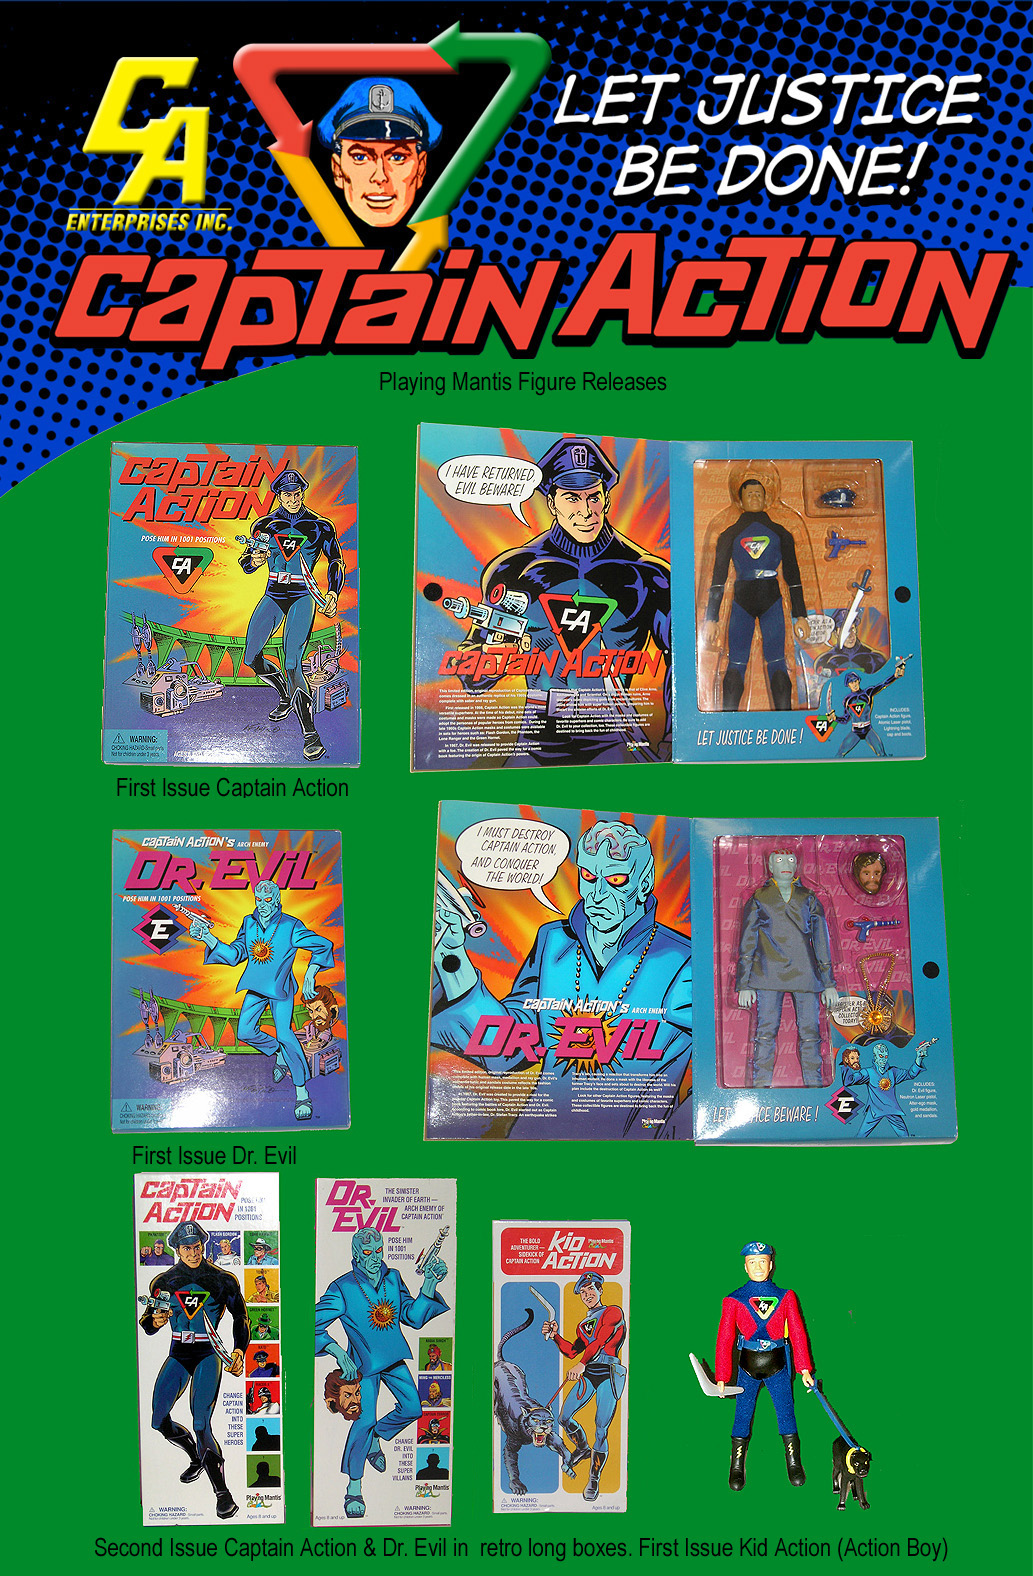 Playing Mantis - Captain Action CaptainAction16